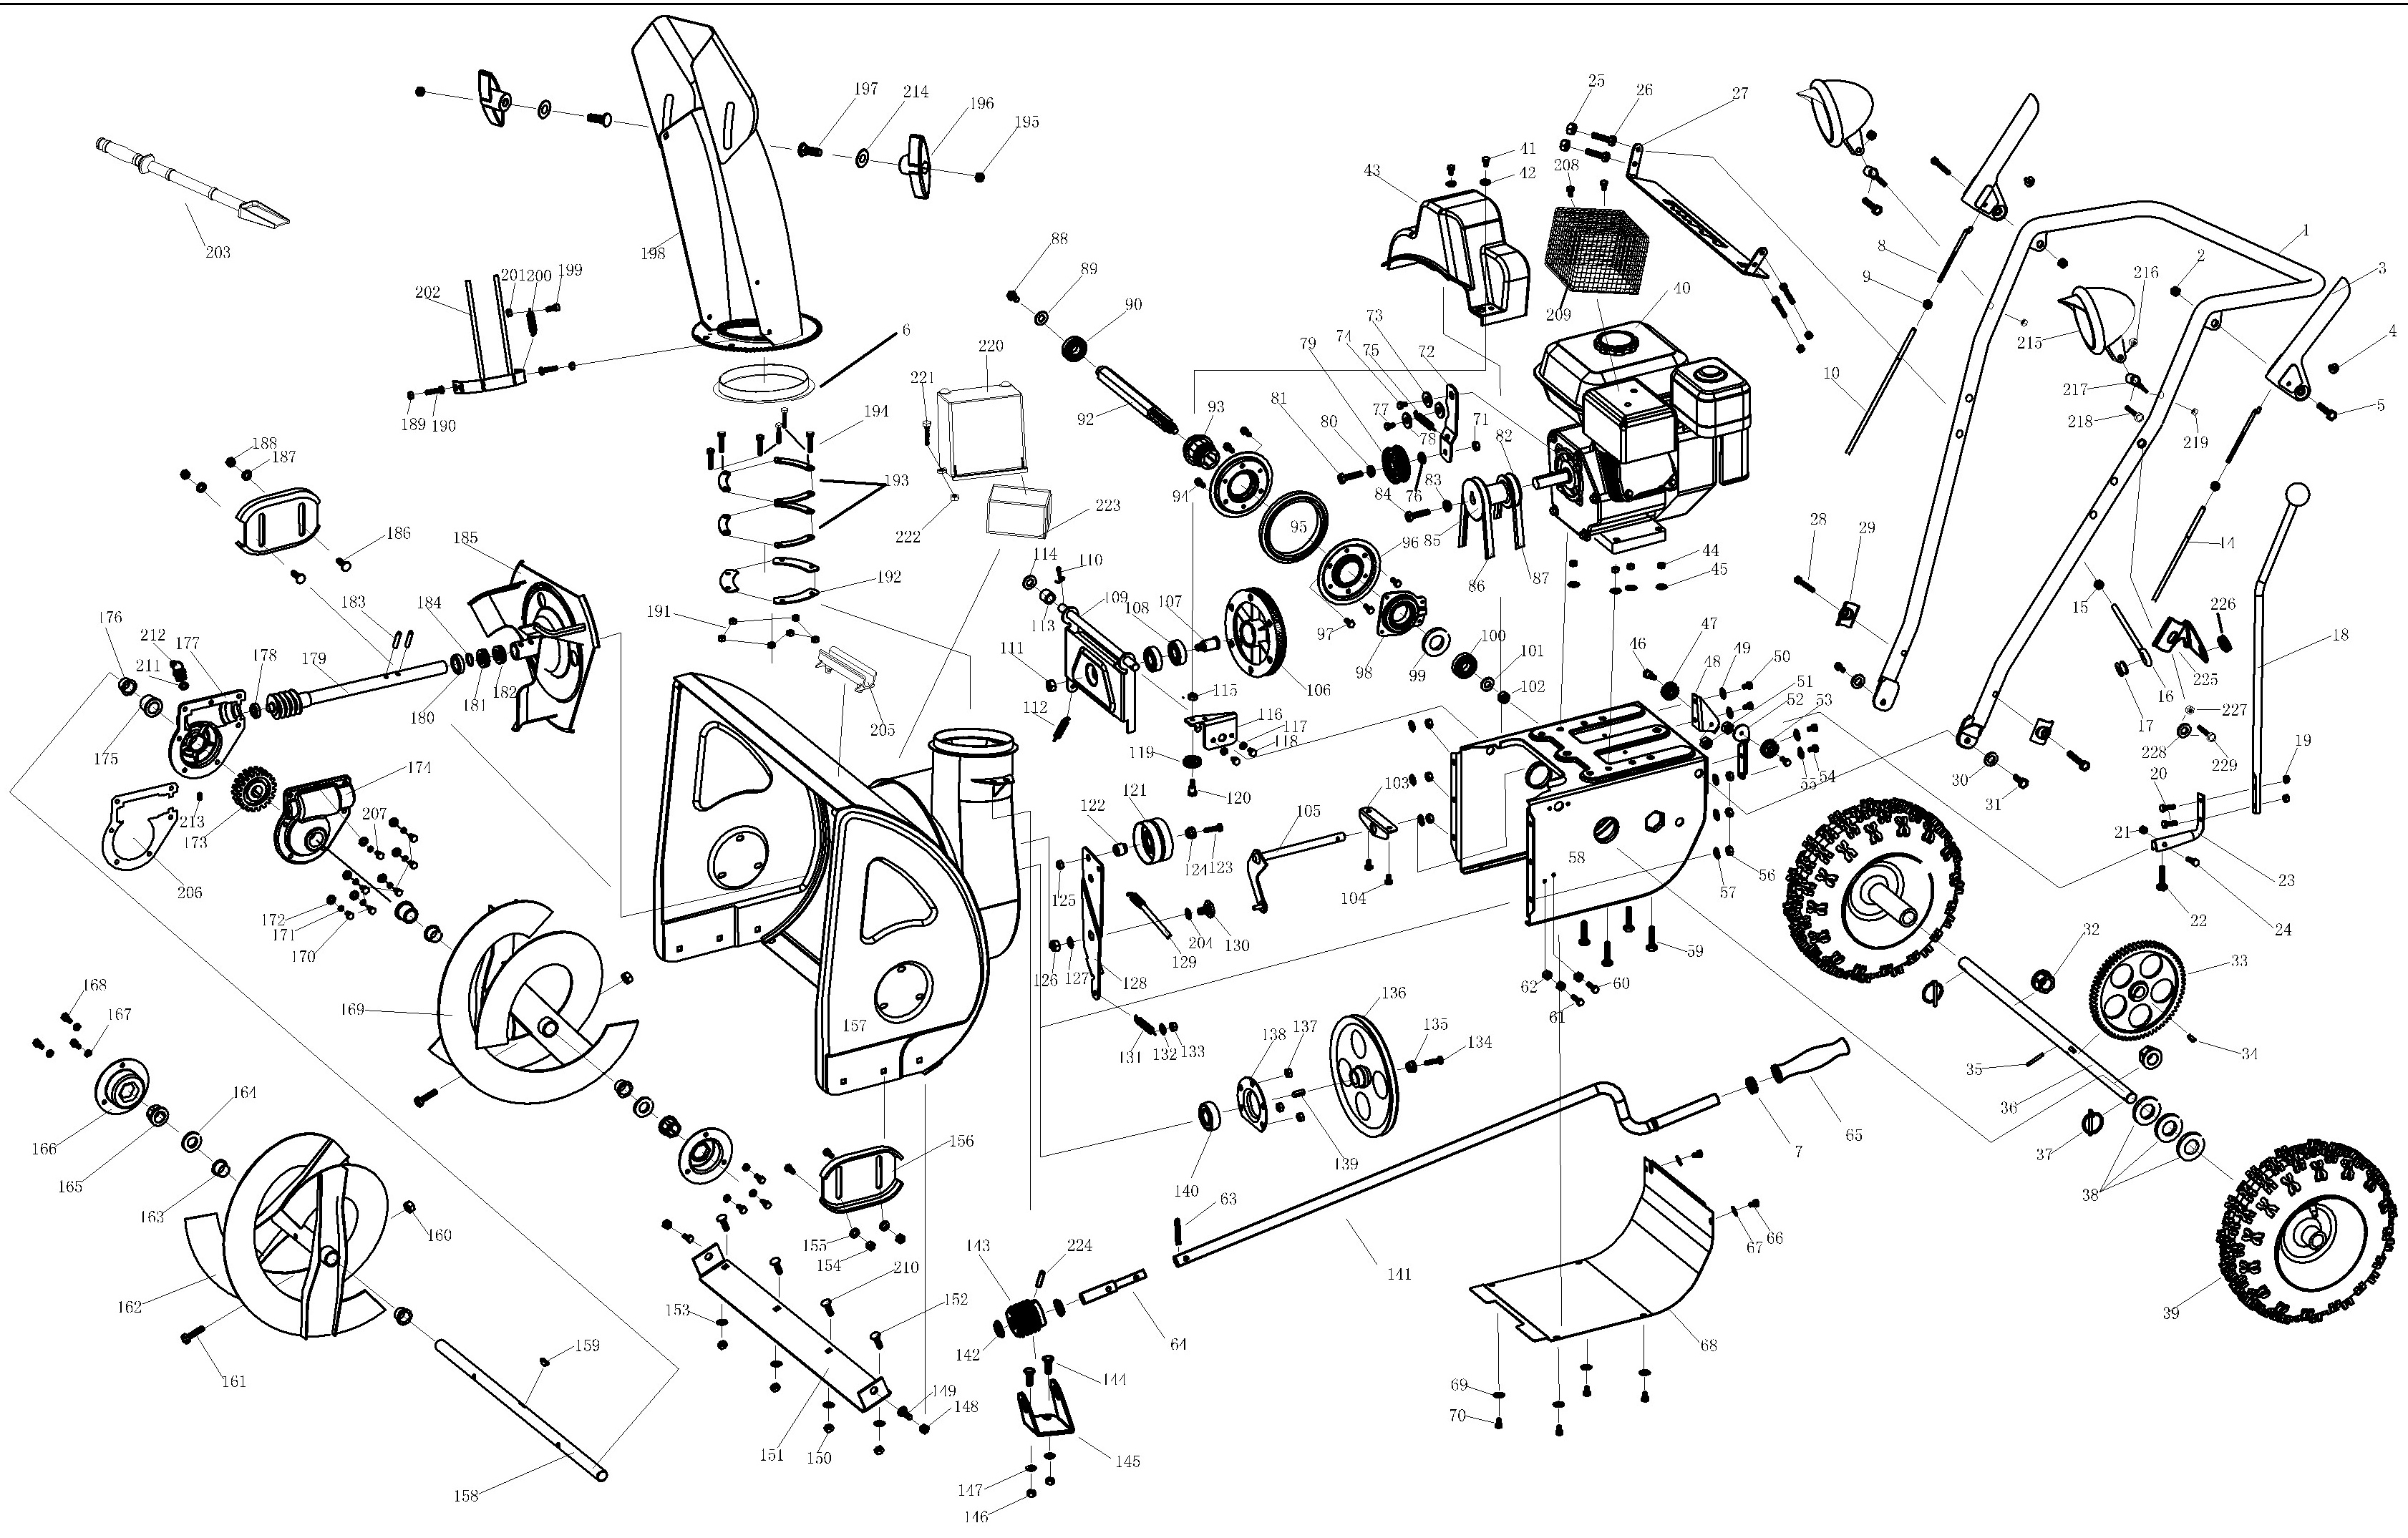 honda gx270 parts diagram  honda  free engine image for